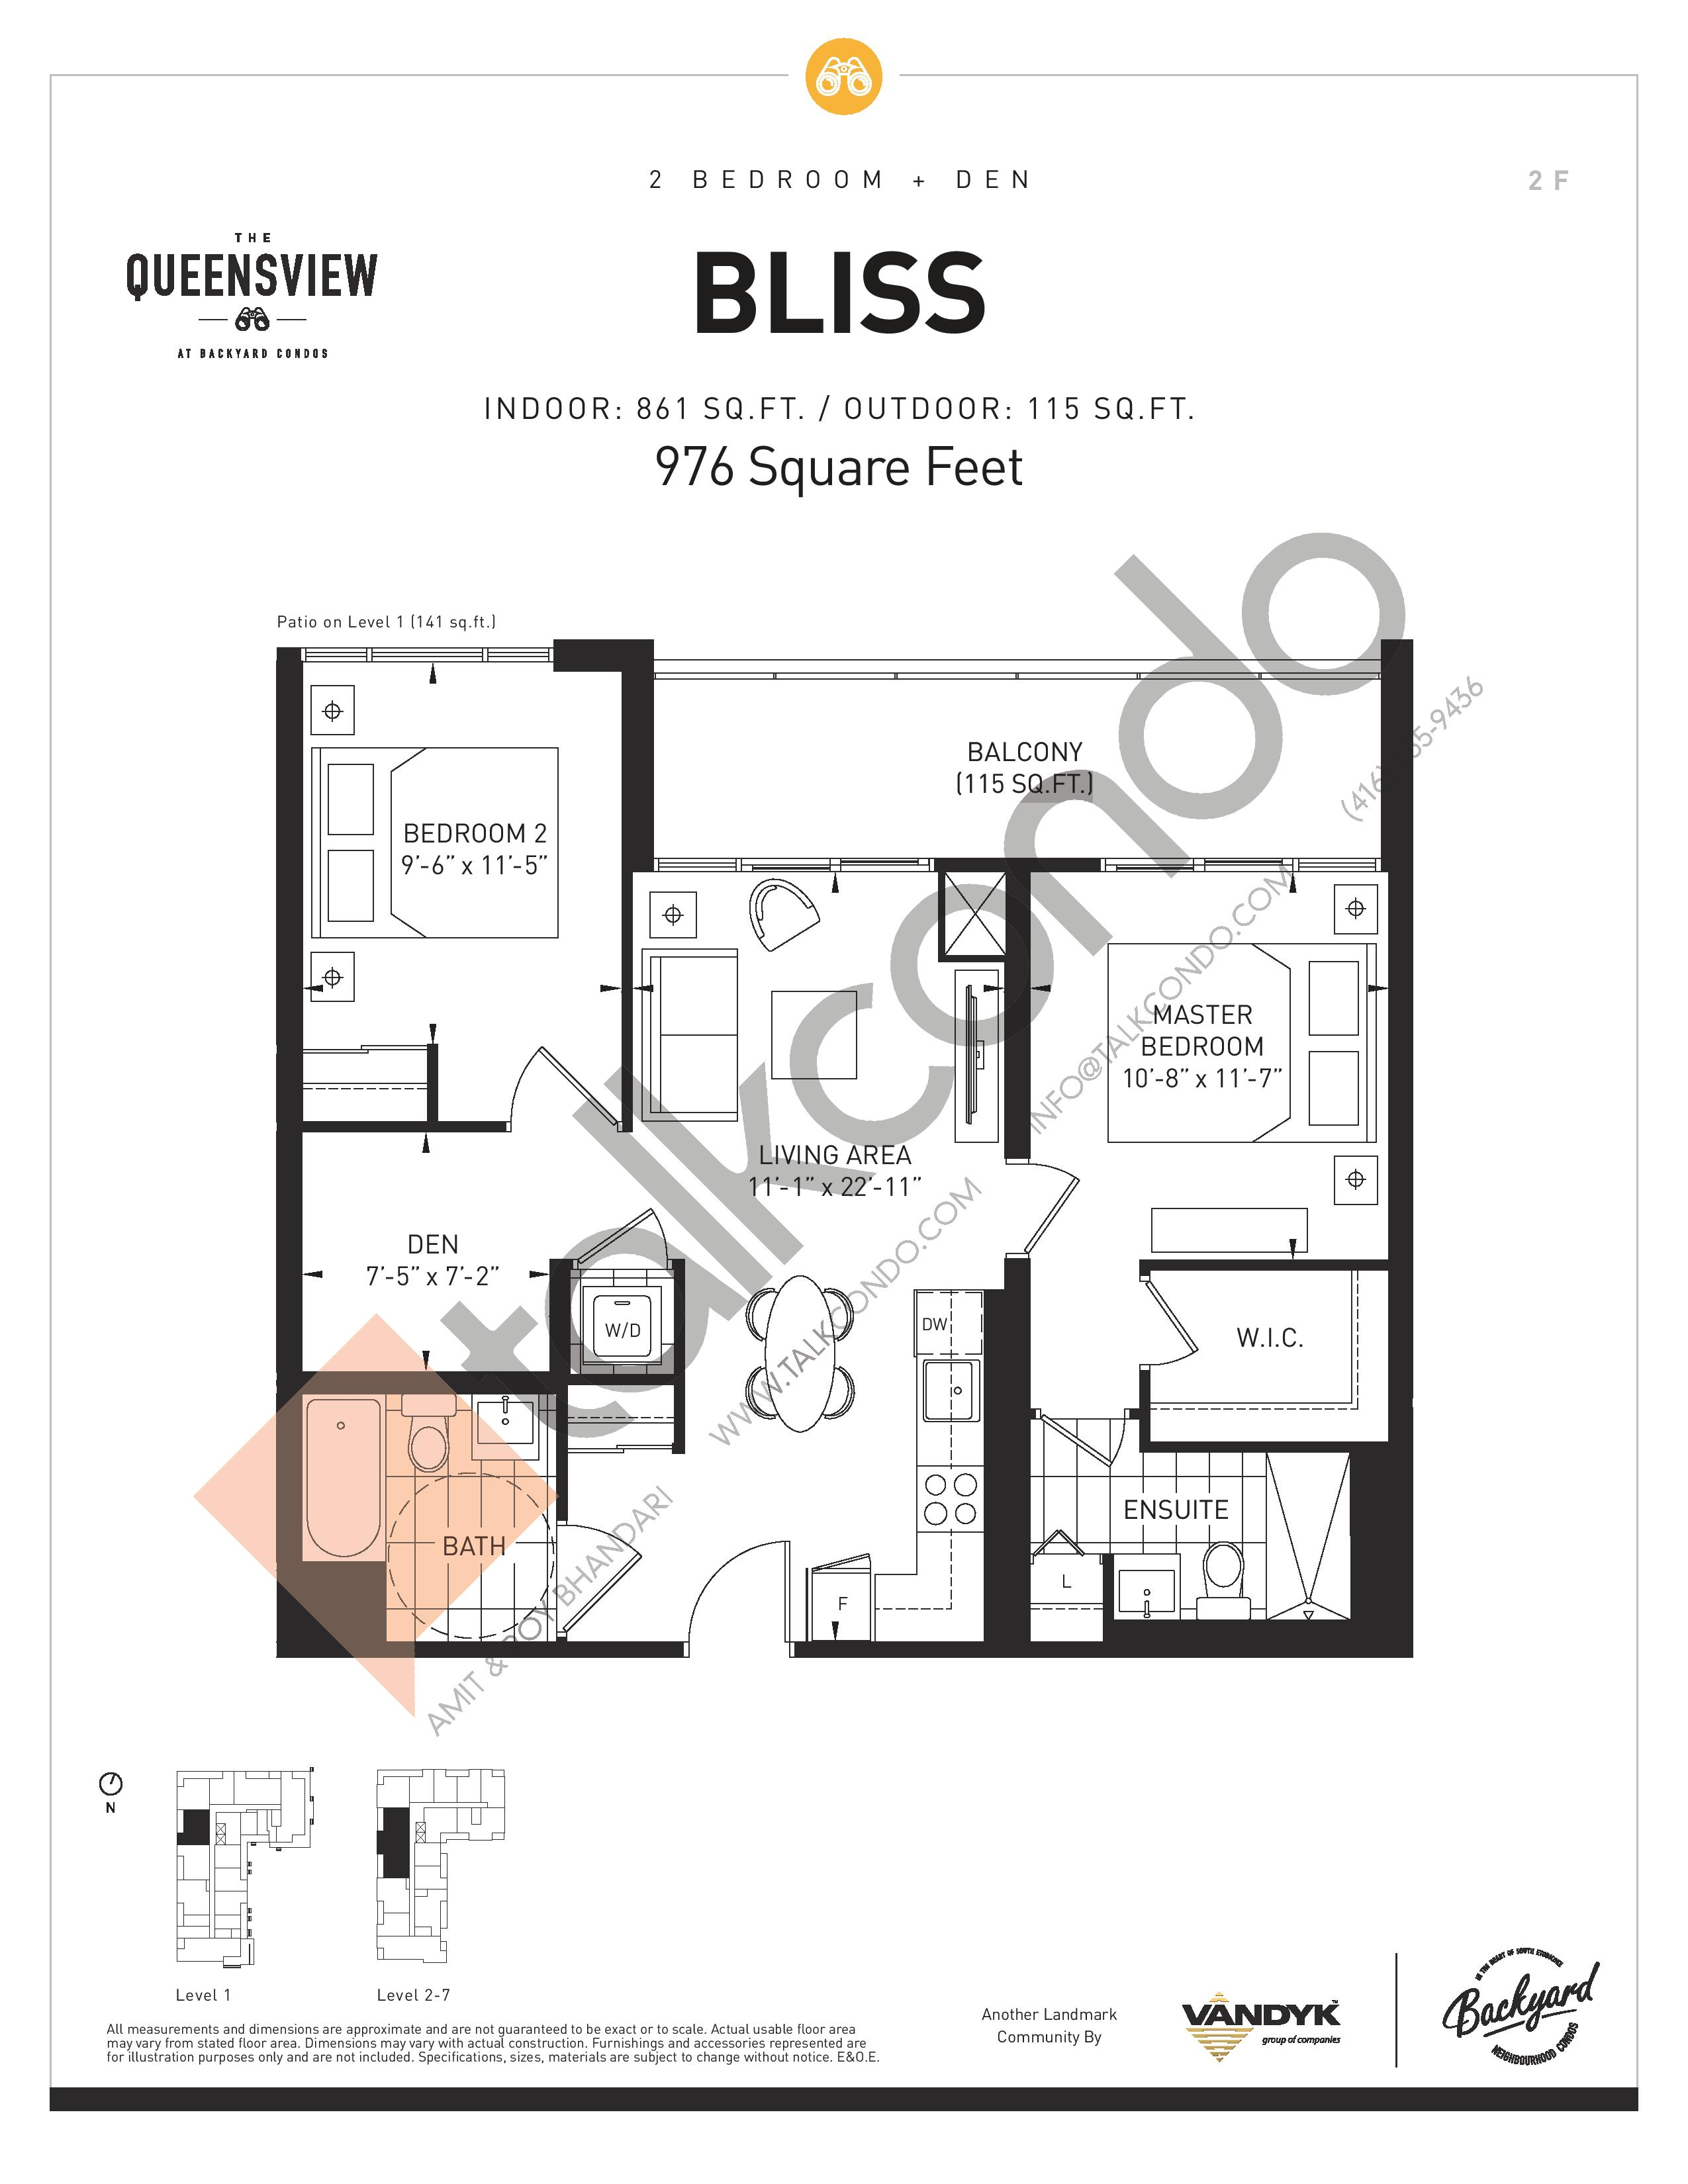 Bliss Floor Plan at The Queensview at Backyard Condos - 861 sq.ft